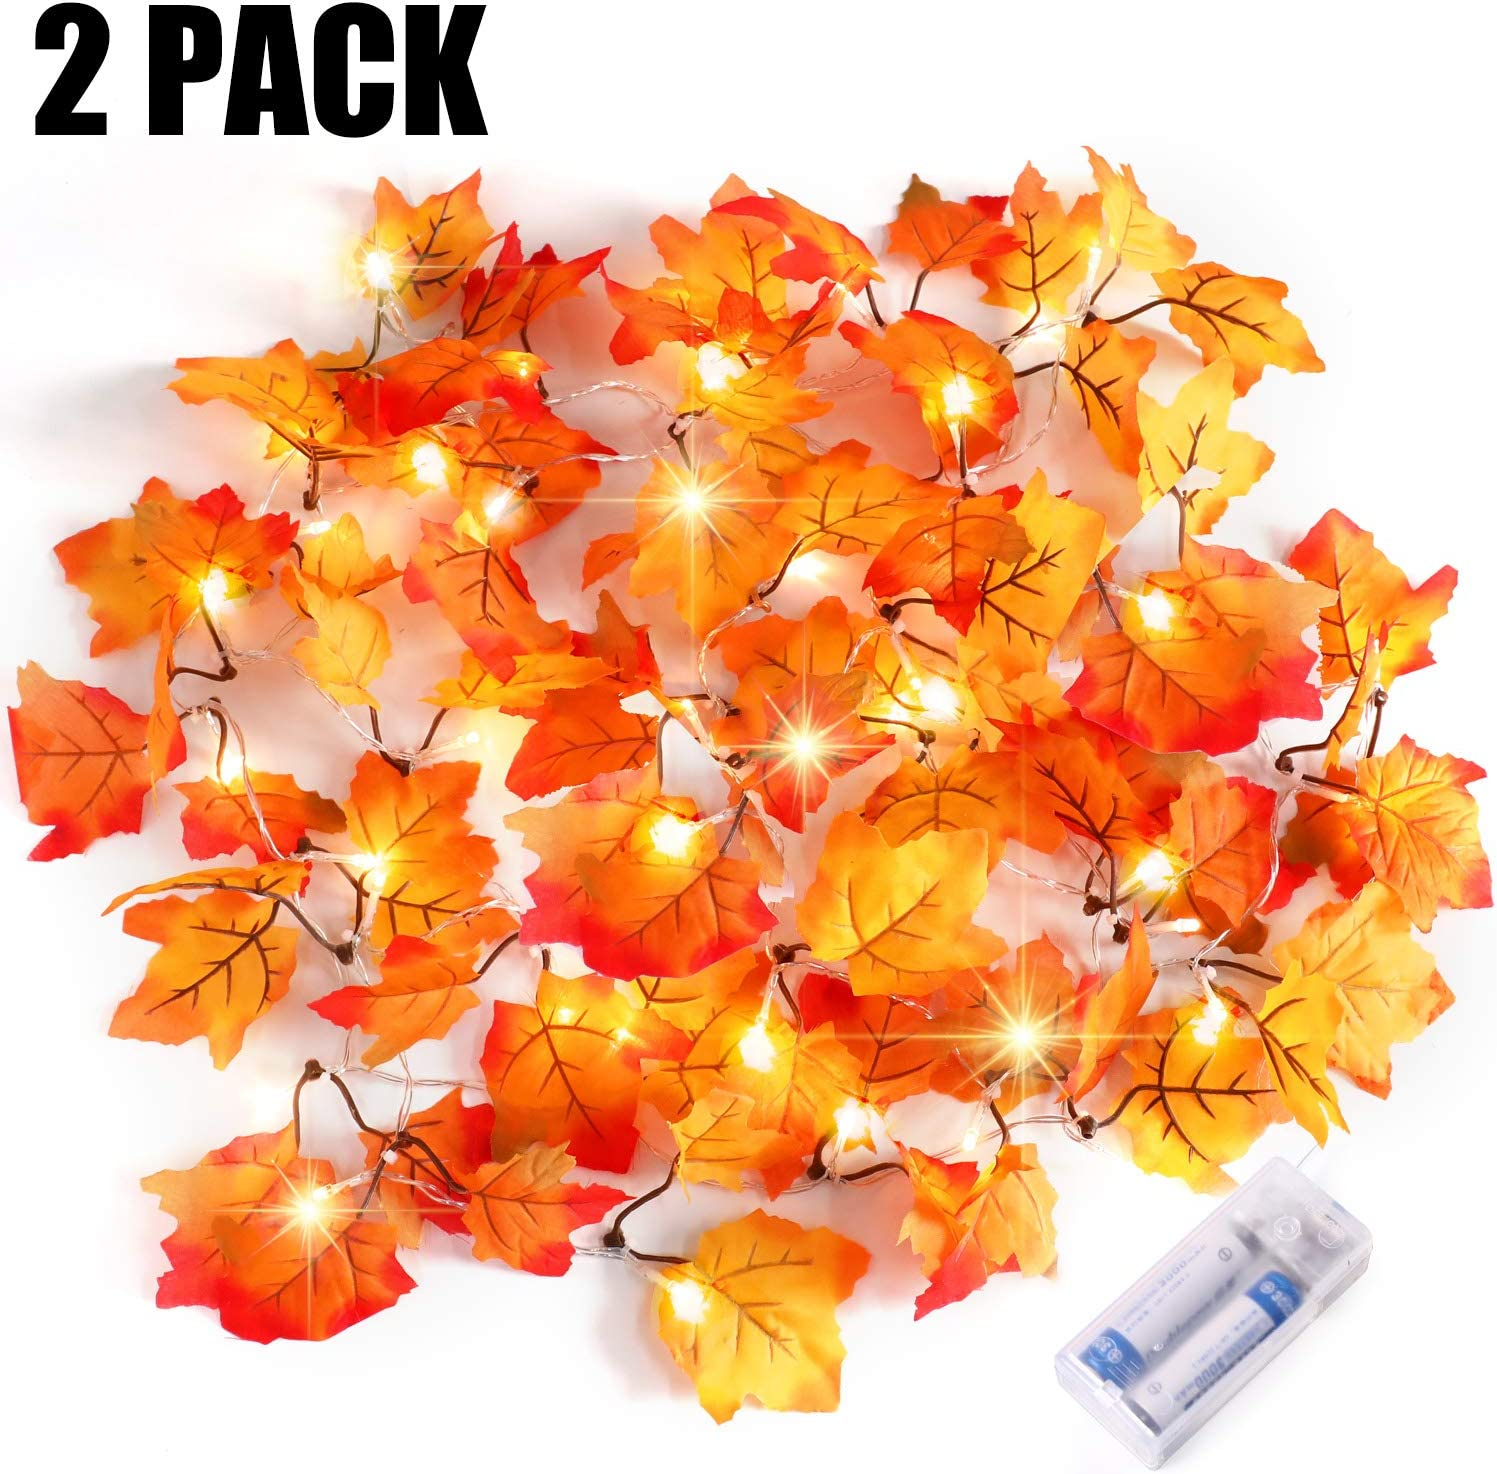 Severino Fall Decor Lighted Fall Garland String Lights for Indoor Outdoor Home, HalloweenDecorations, Halloween Party fall leaf garland Waterproof Maple Leaf String Lights - 2 X 20 LED, 16 Feet